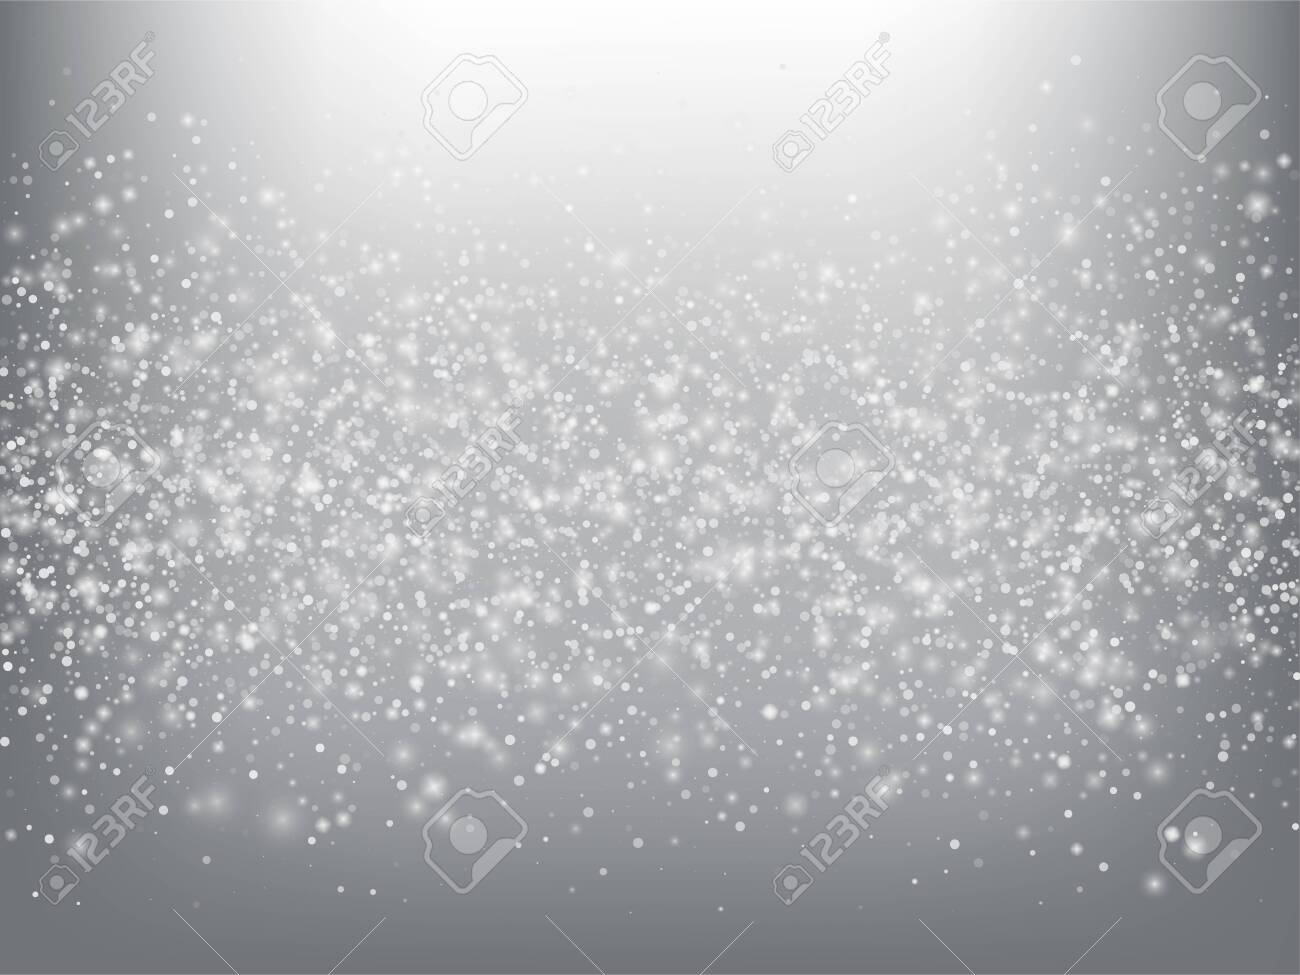 Falling Snow Confetti Winter Vector Background. Christmas, New Year Celebration Snowflakes Pattern. Realistic Flying Snow, Storm Sky Effect. Winter Ad Decoration. Falling Snow Winter Confetti On Gray - 141016375